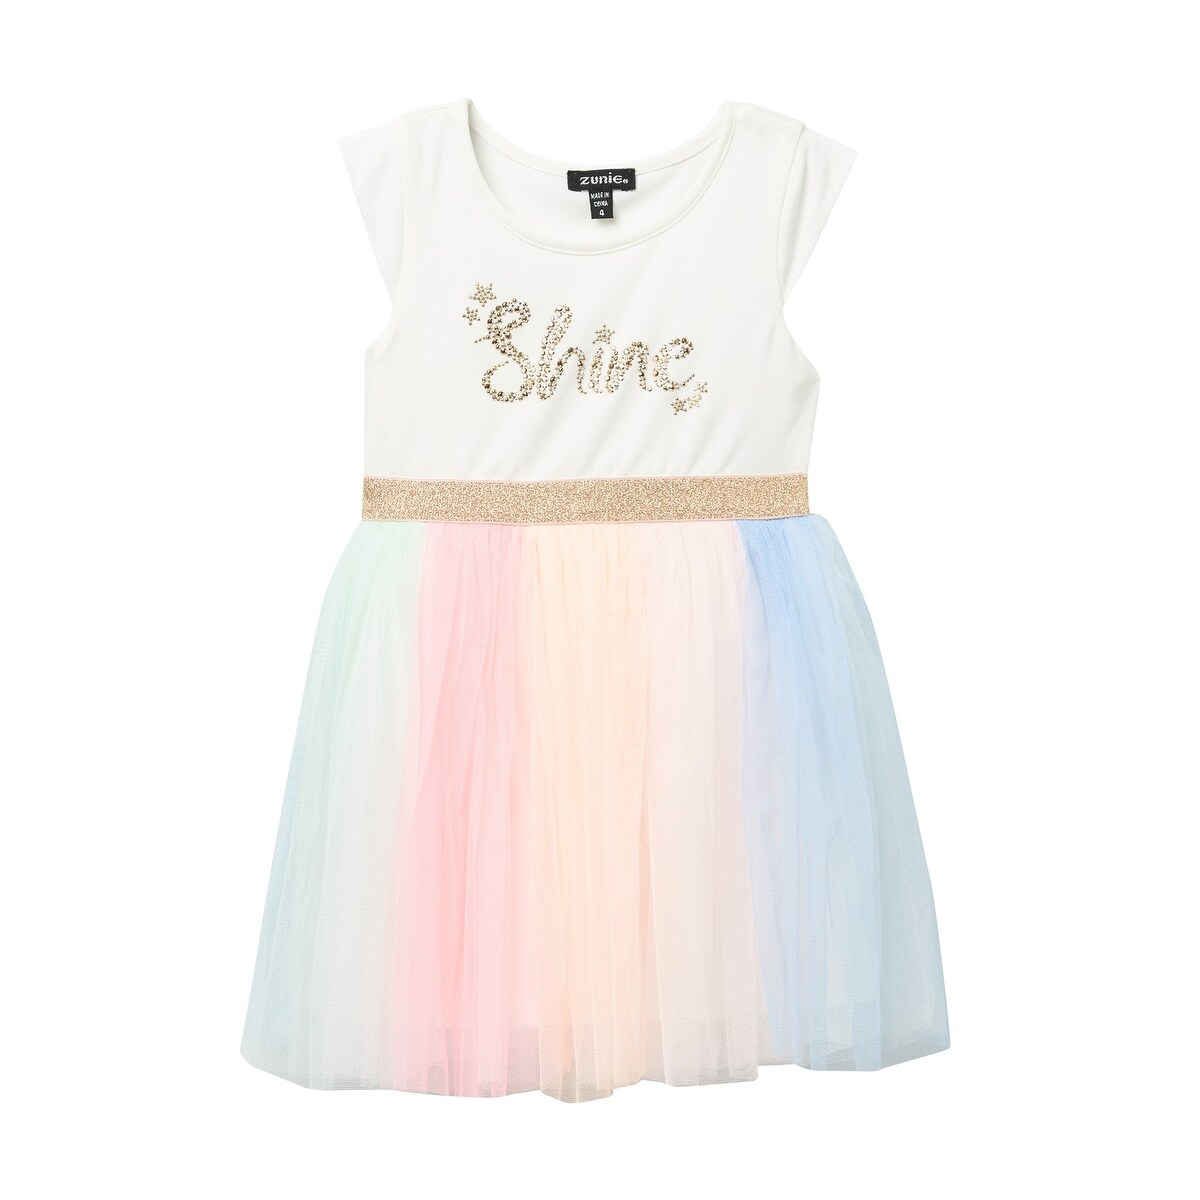 e7d2a3a6d409 Shop Zunie White Baby Girls Size 2T 'Shine' Metallic Rainbow Mesh Dress -  Free Shipping On Orders Over $45 - Overstock - 28065927